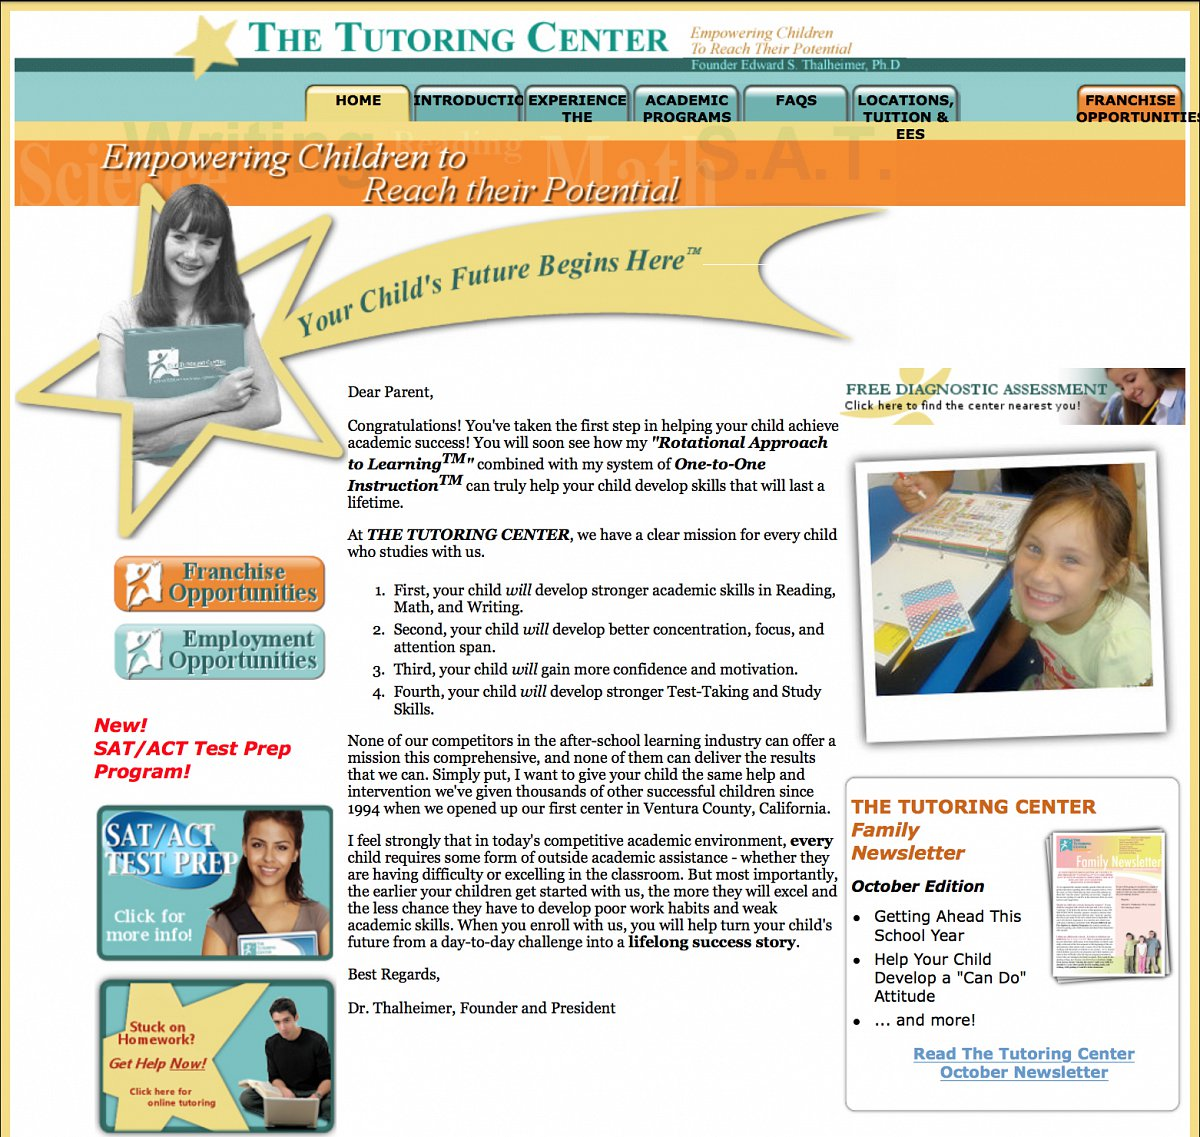 Previous homepage for The Tutoring Center